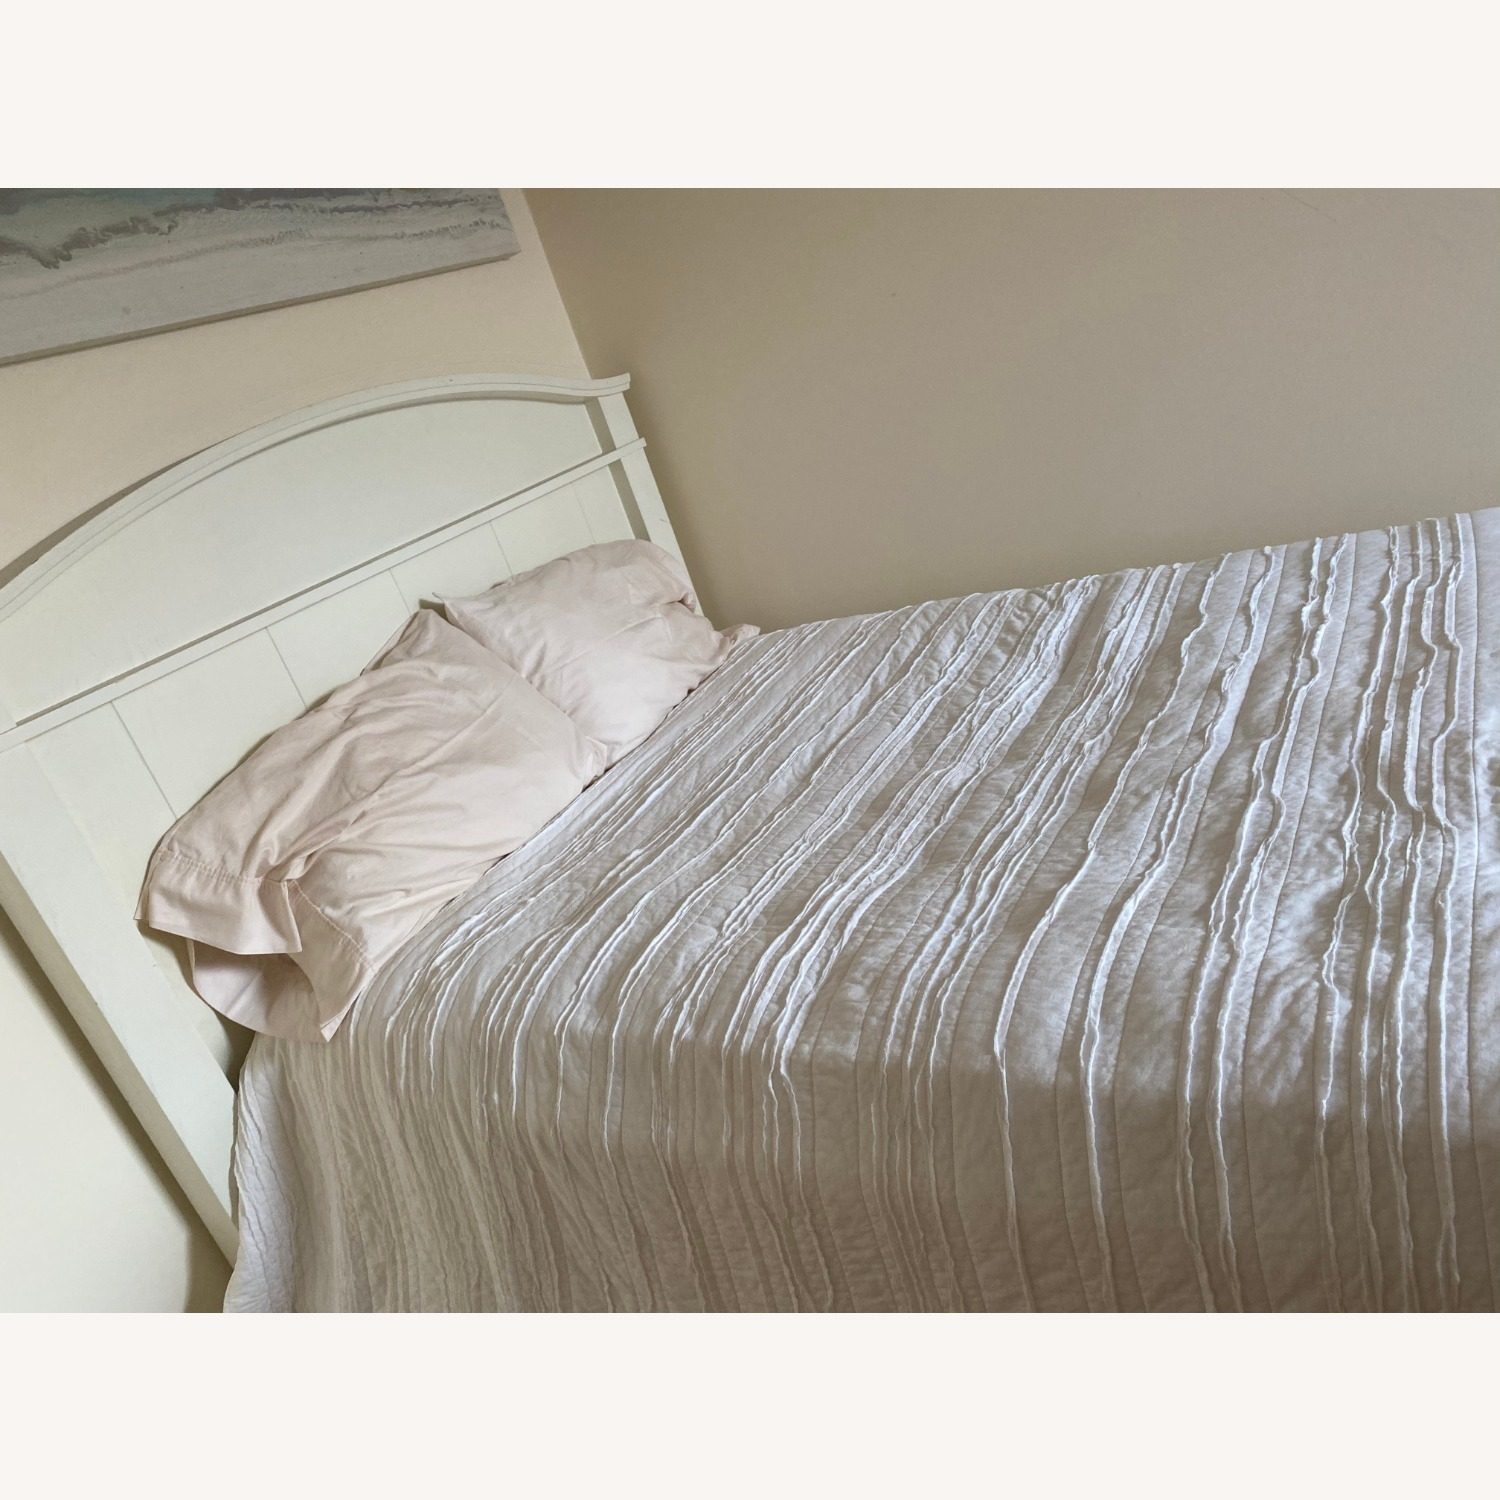 Pottery Barn Full Sized Headboard and Frame - image-3